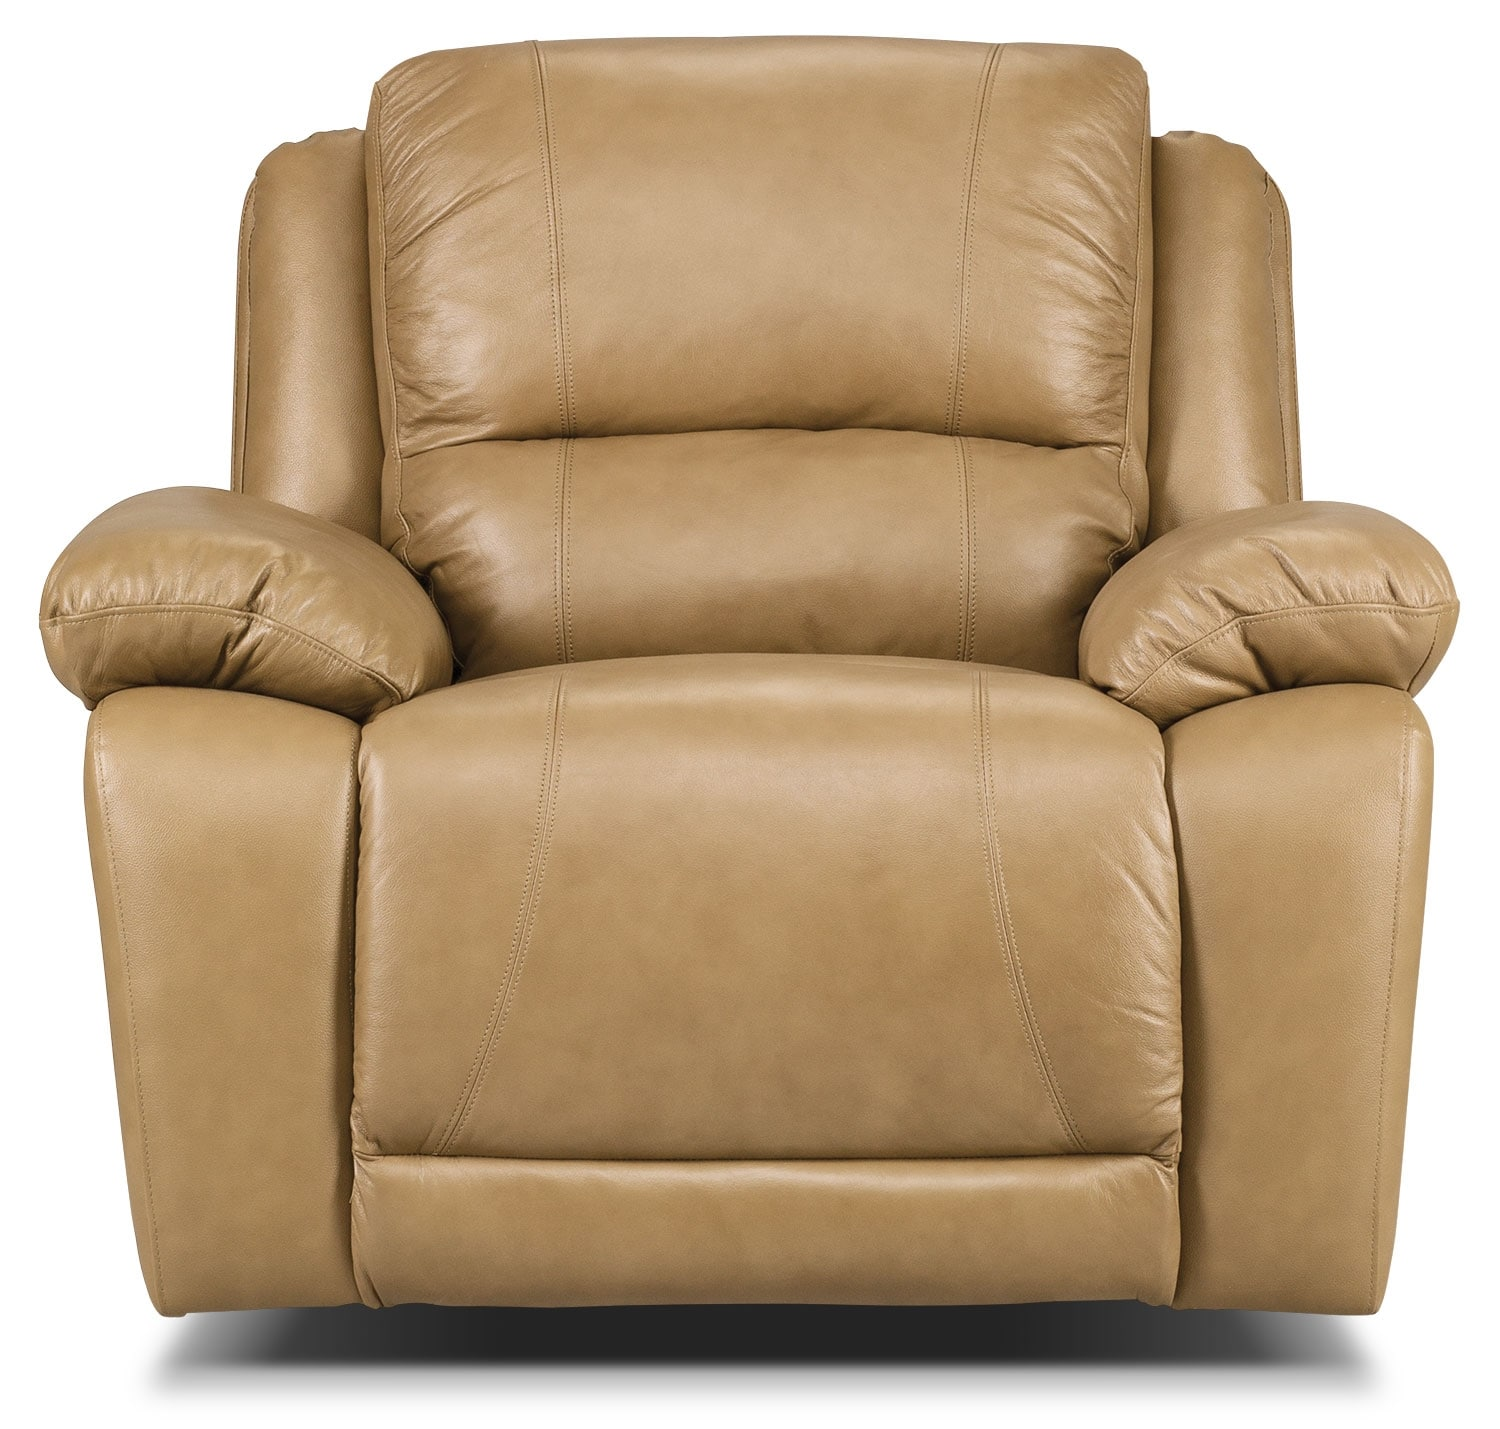 Living Room Furniture - Marco Genuine Leather Power Reclining Chair - Toffee